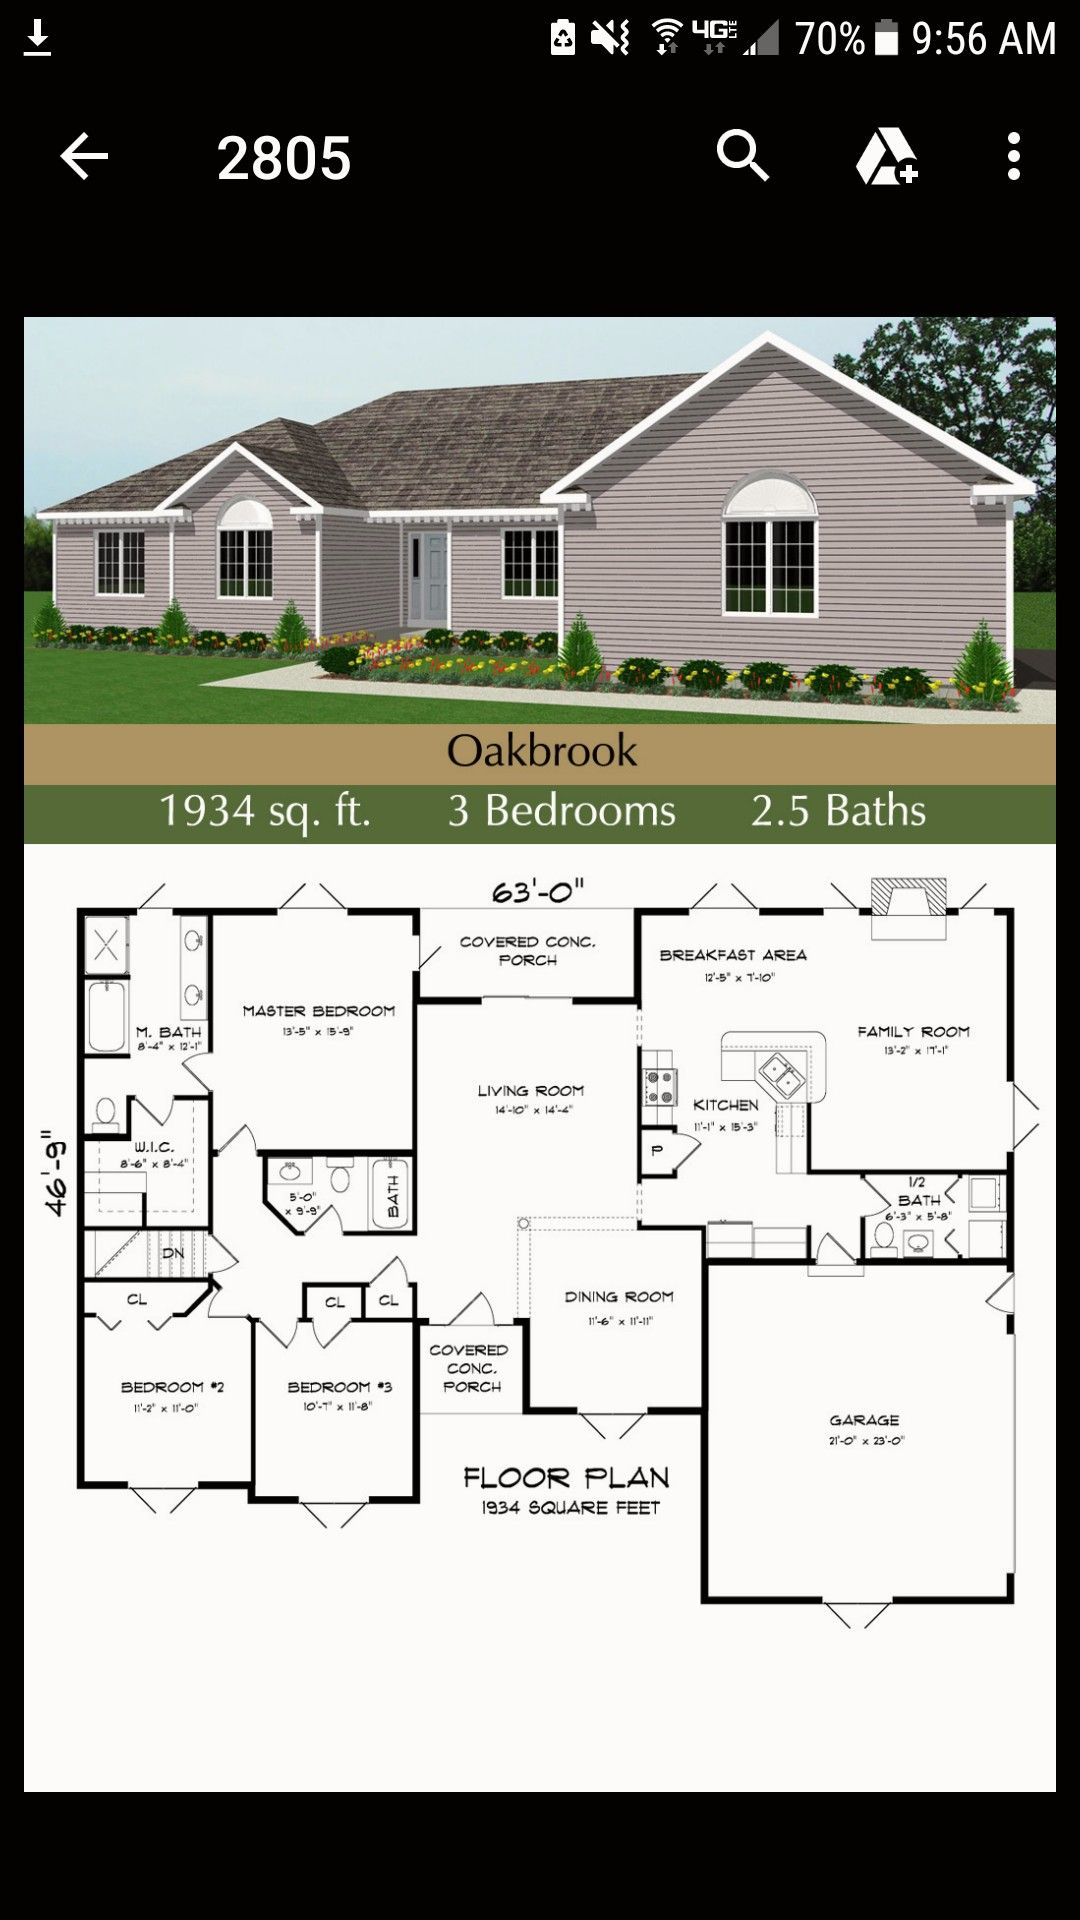 barden homes plan house plans pinterest house